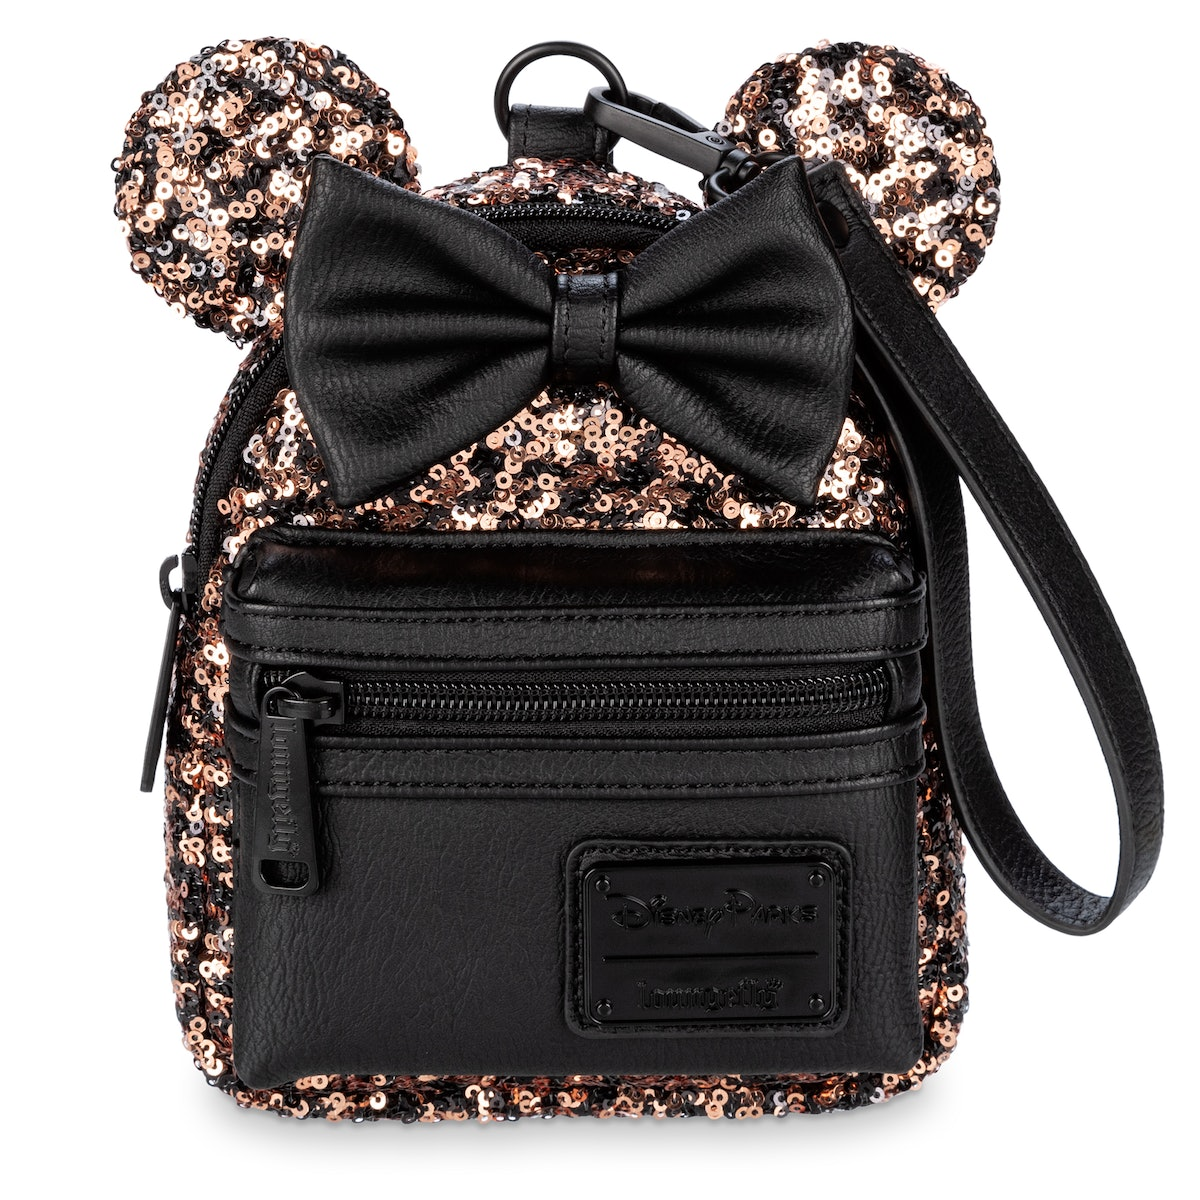 Disney's Belle Of The Ball Bronze Collection includes a mini backpack and a wristlet.